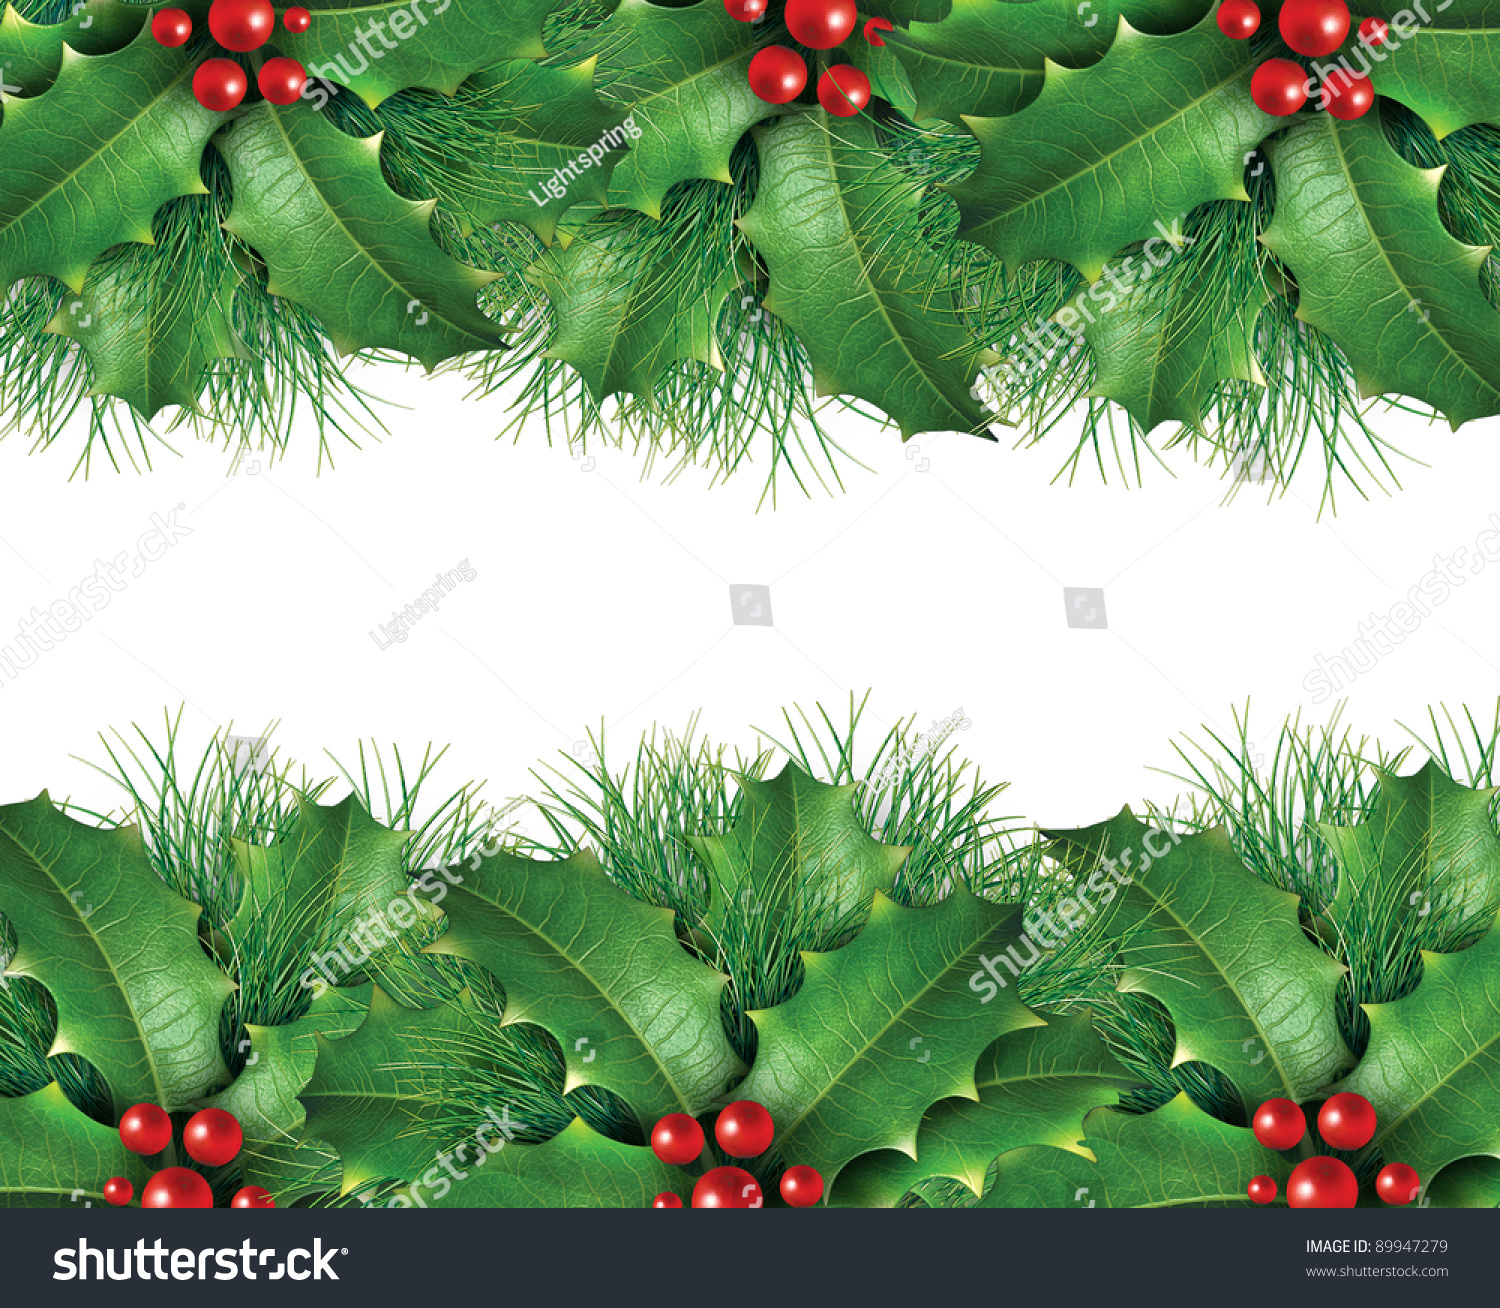 Christmas Background Image Wreath Holly Leaves Stock Illustration ...